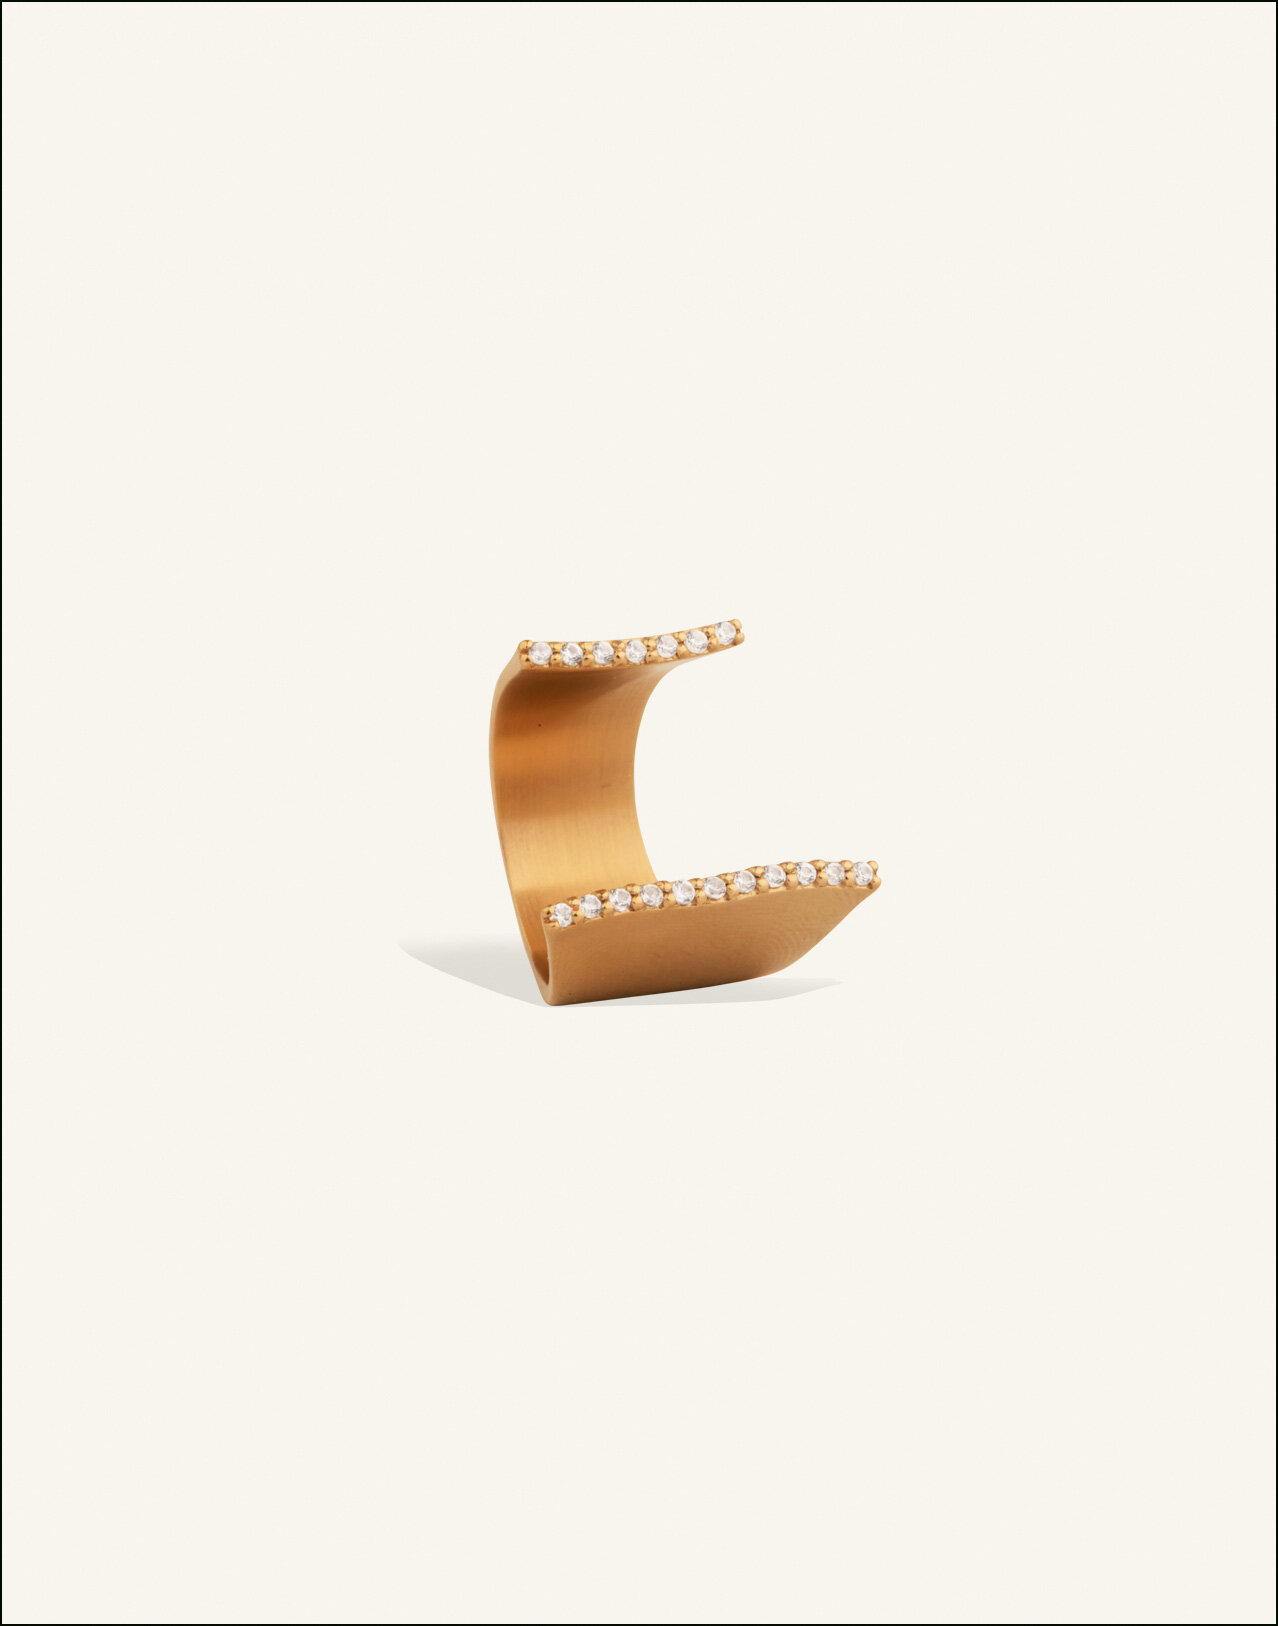 Completedworks-Gold-Vermeil-Ring-How-to-manage-a-career-break-2.jpg